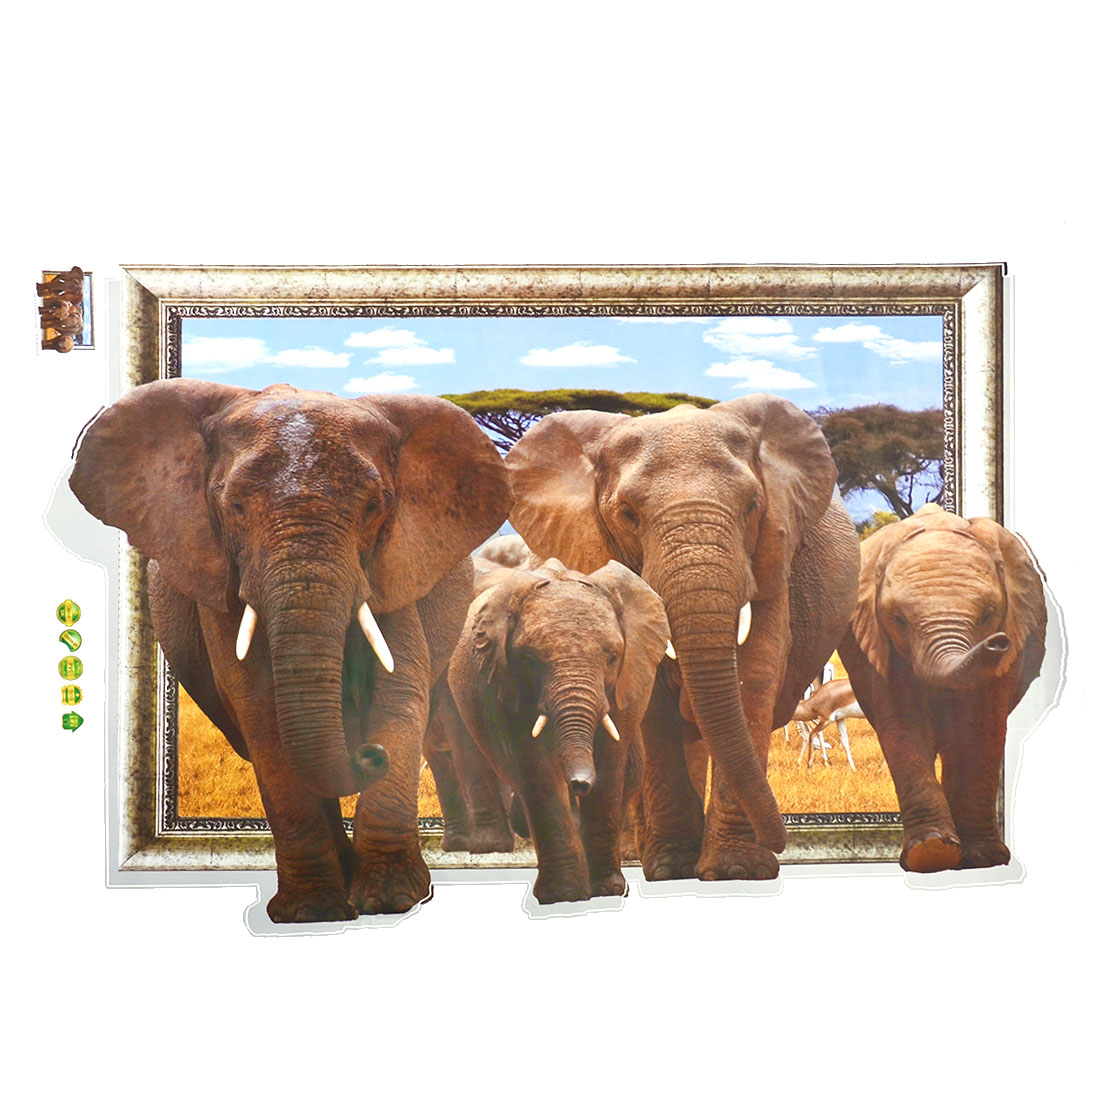 Living Room PVC Elephants Prints DIY Ornament 3D Wall Sticker Decal Mural 60 x 90cm